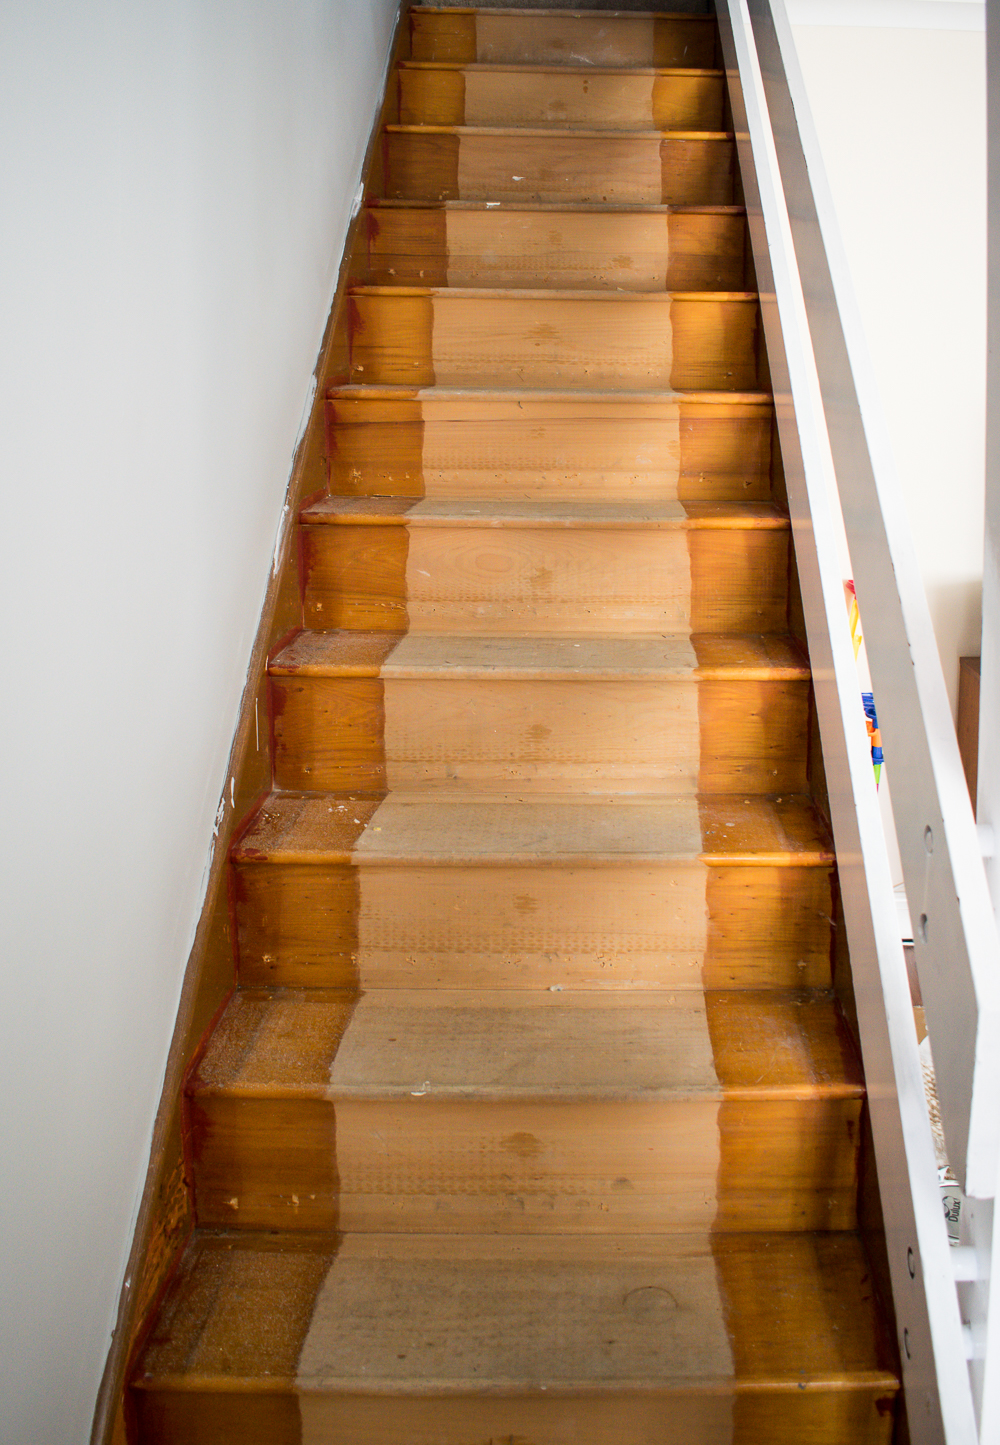 Wooden staircase without carpet